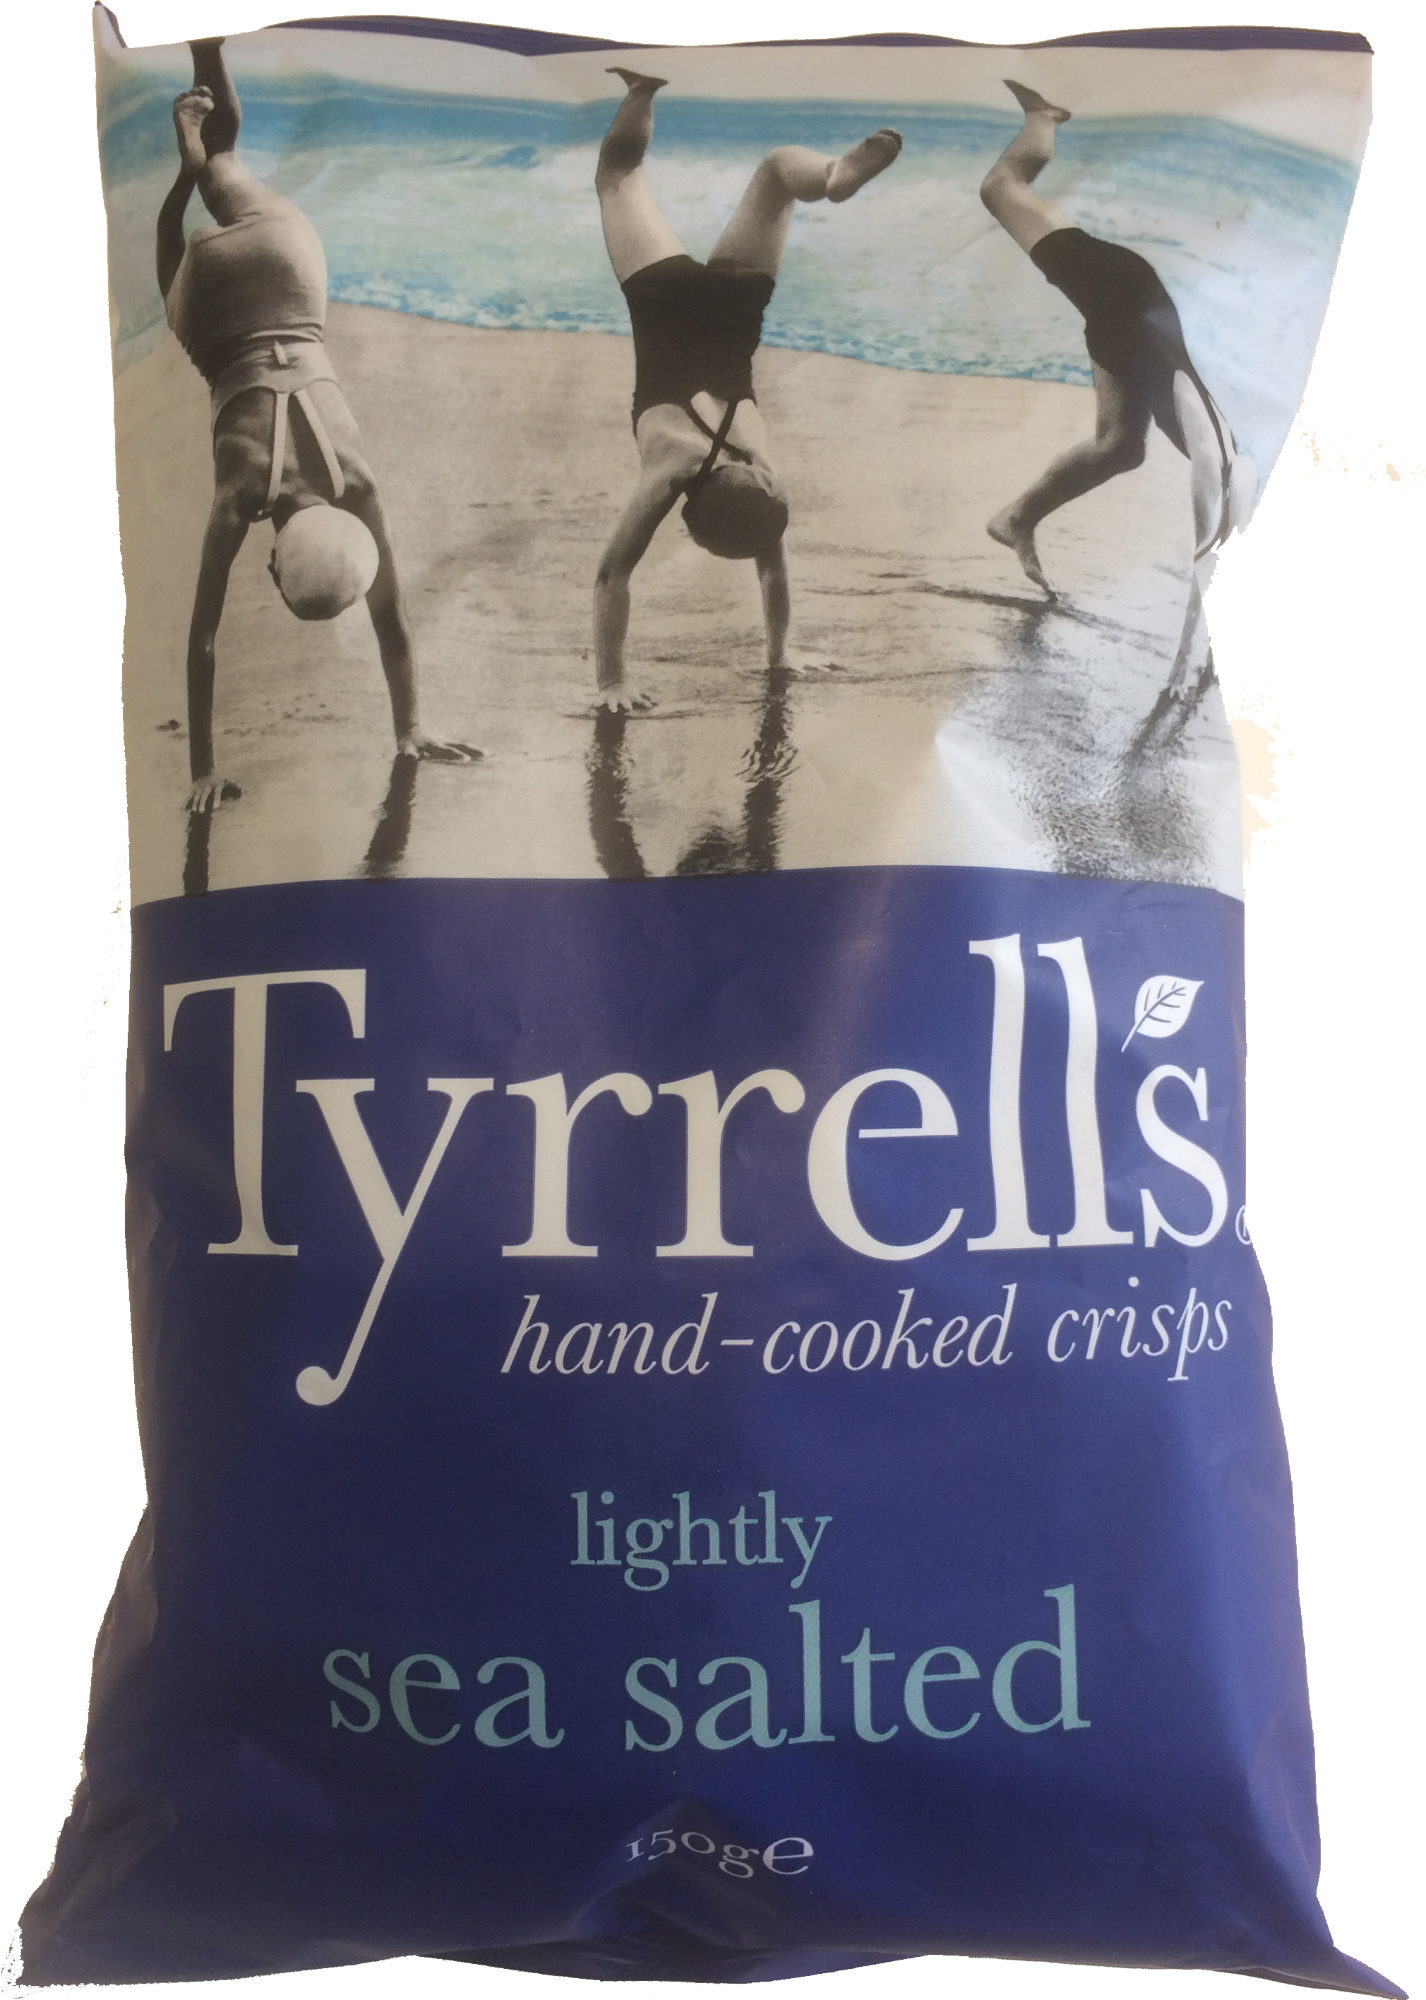 Hand-Cooked Crisps Lightly Sea Salted - Product